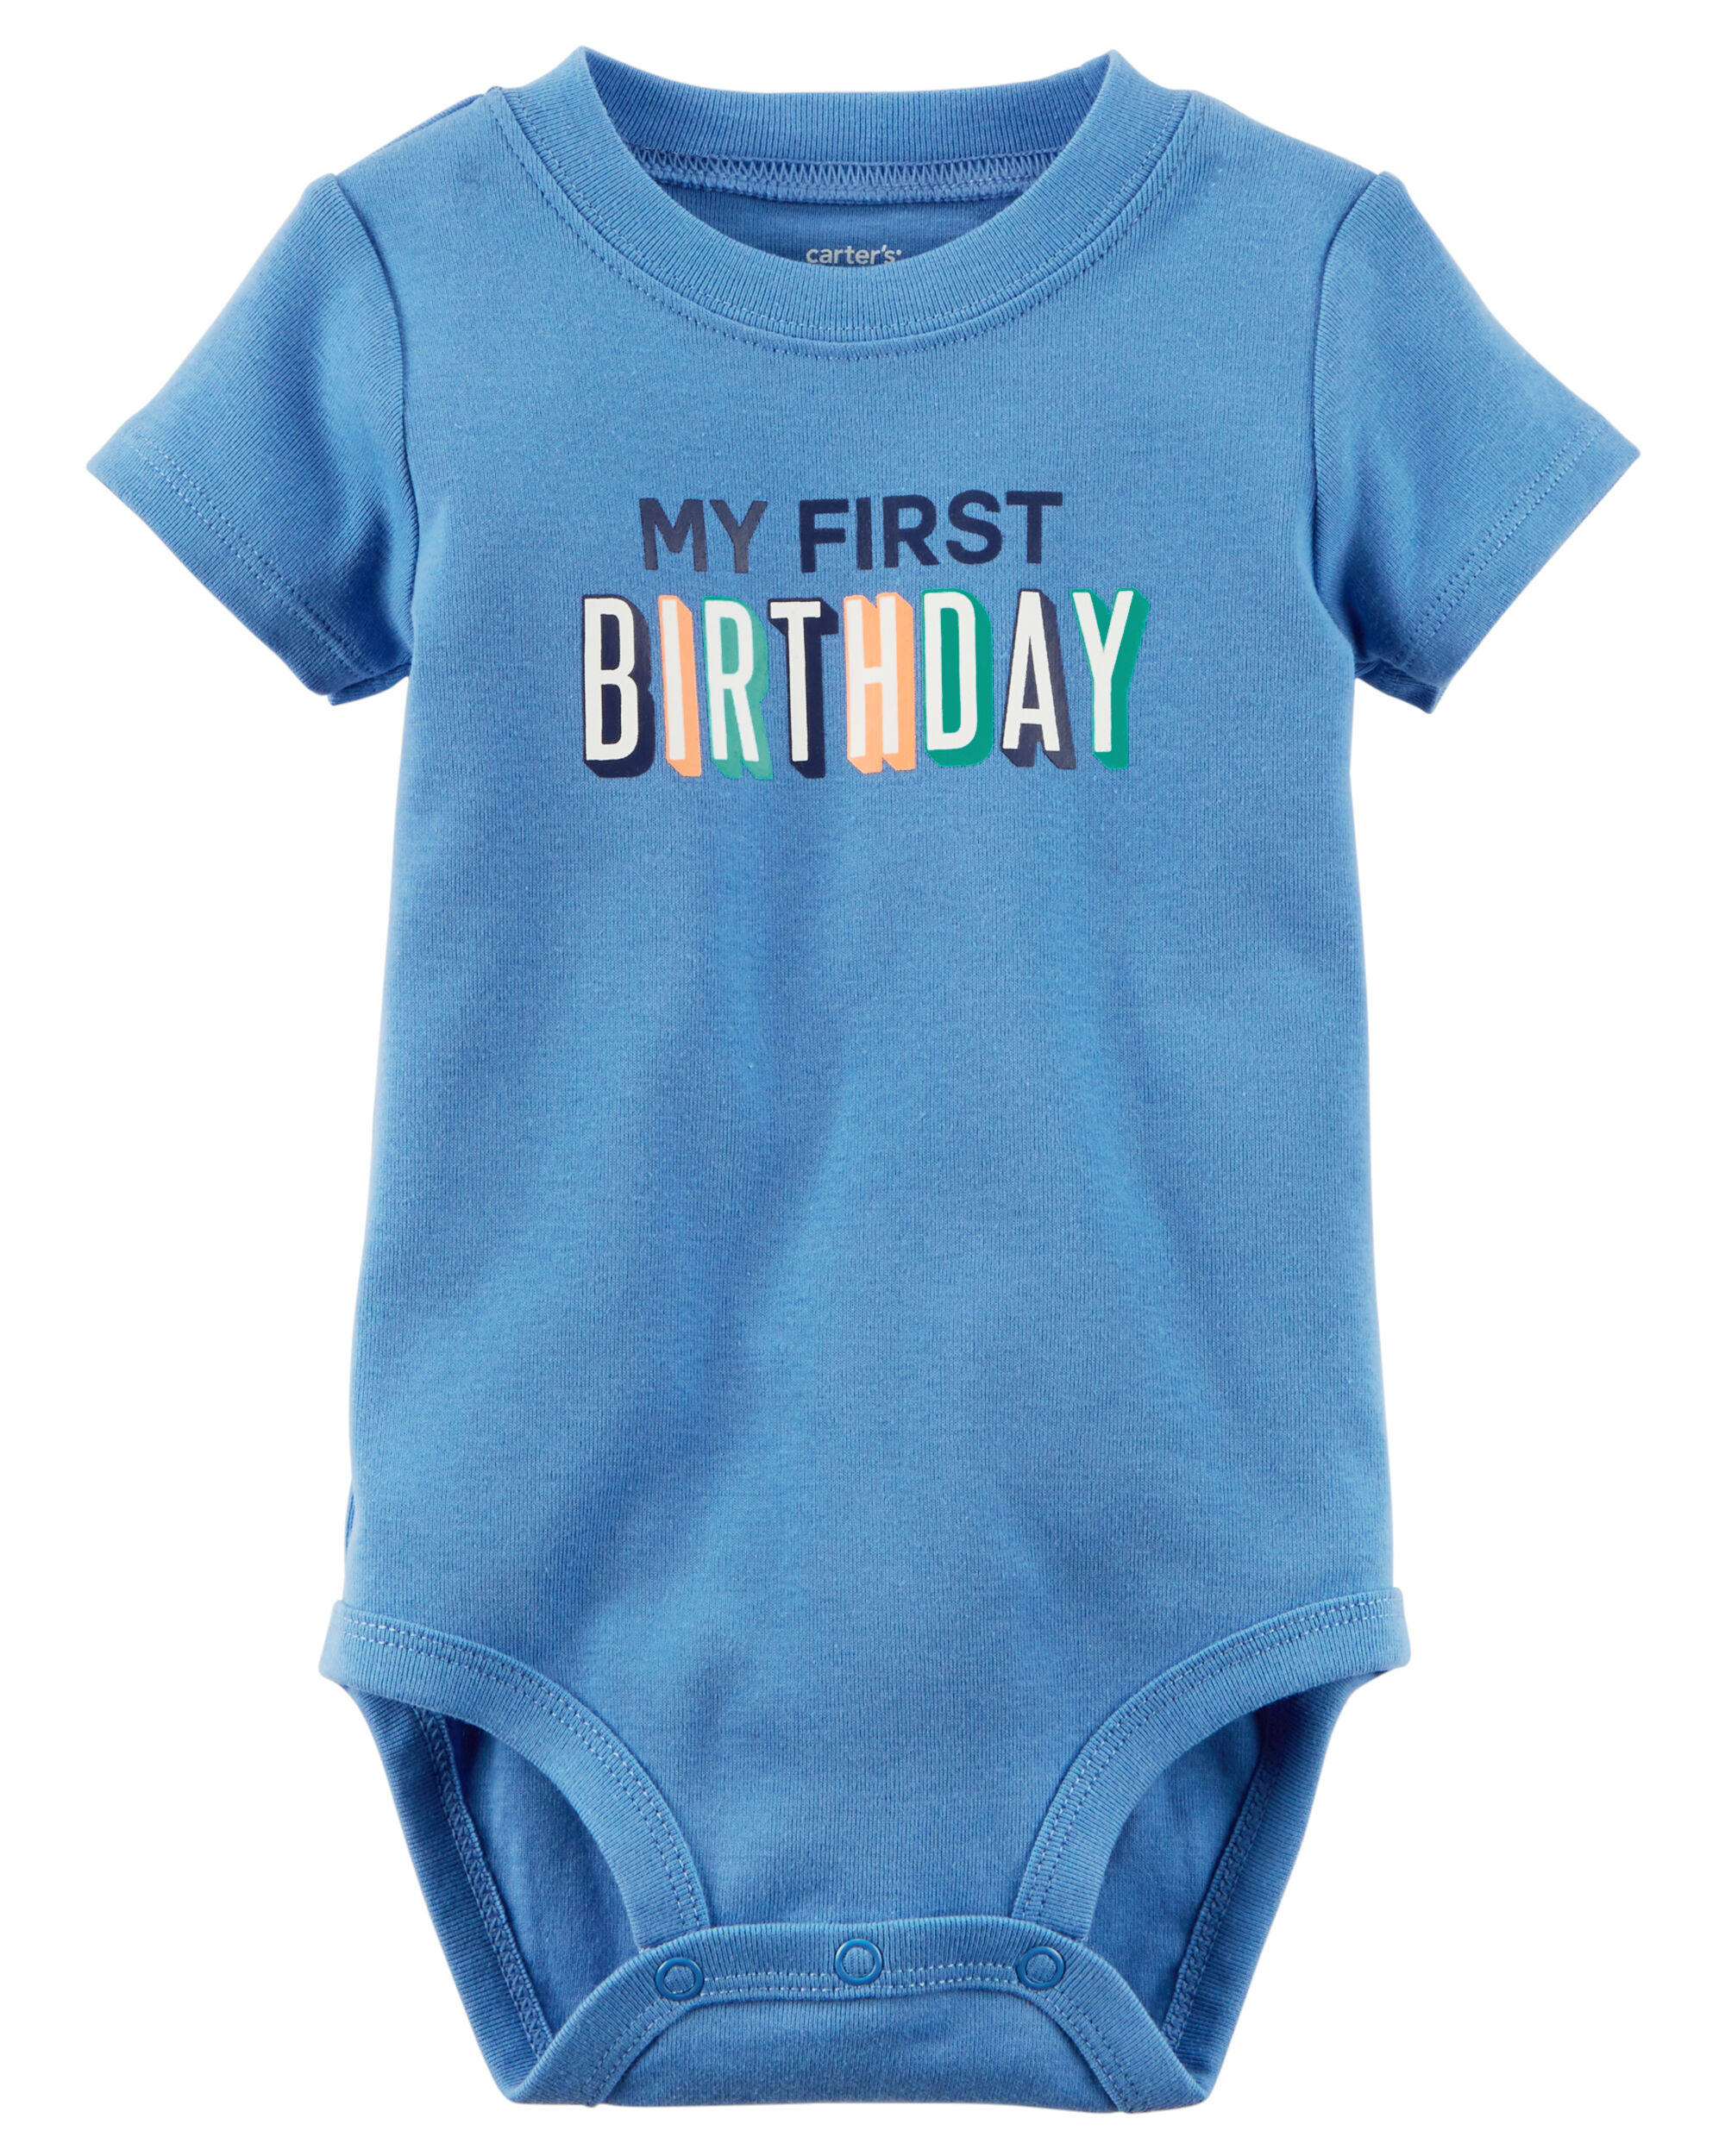 My First Birthday Shirt Boy